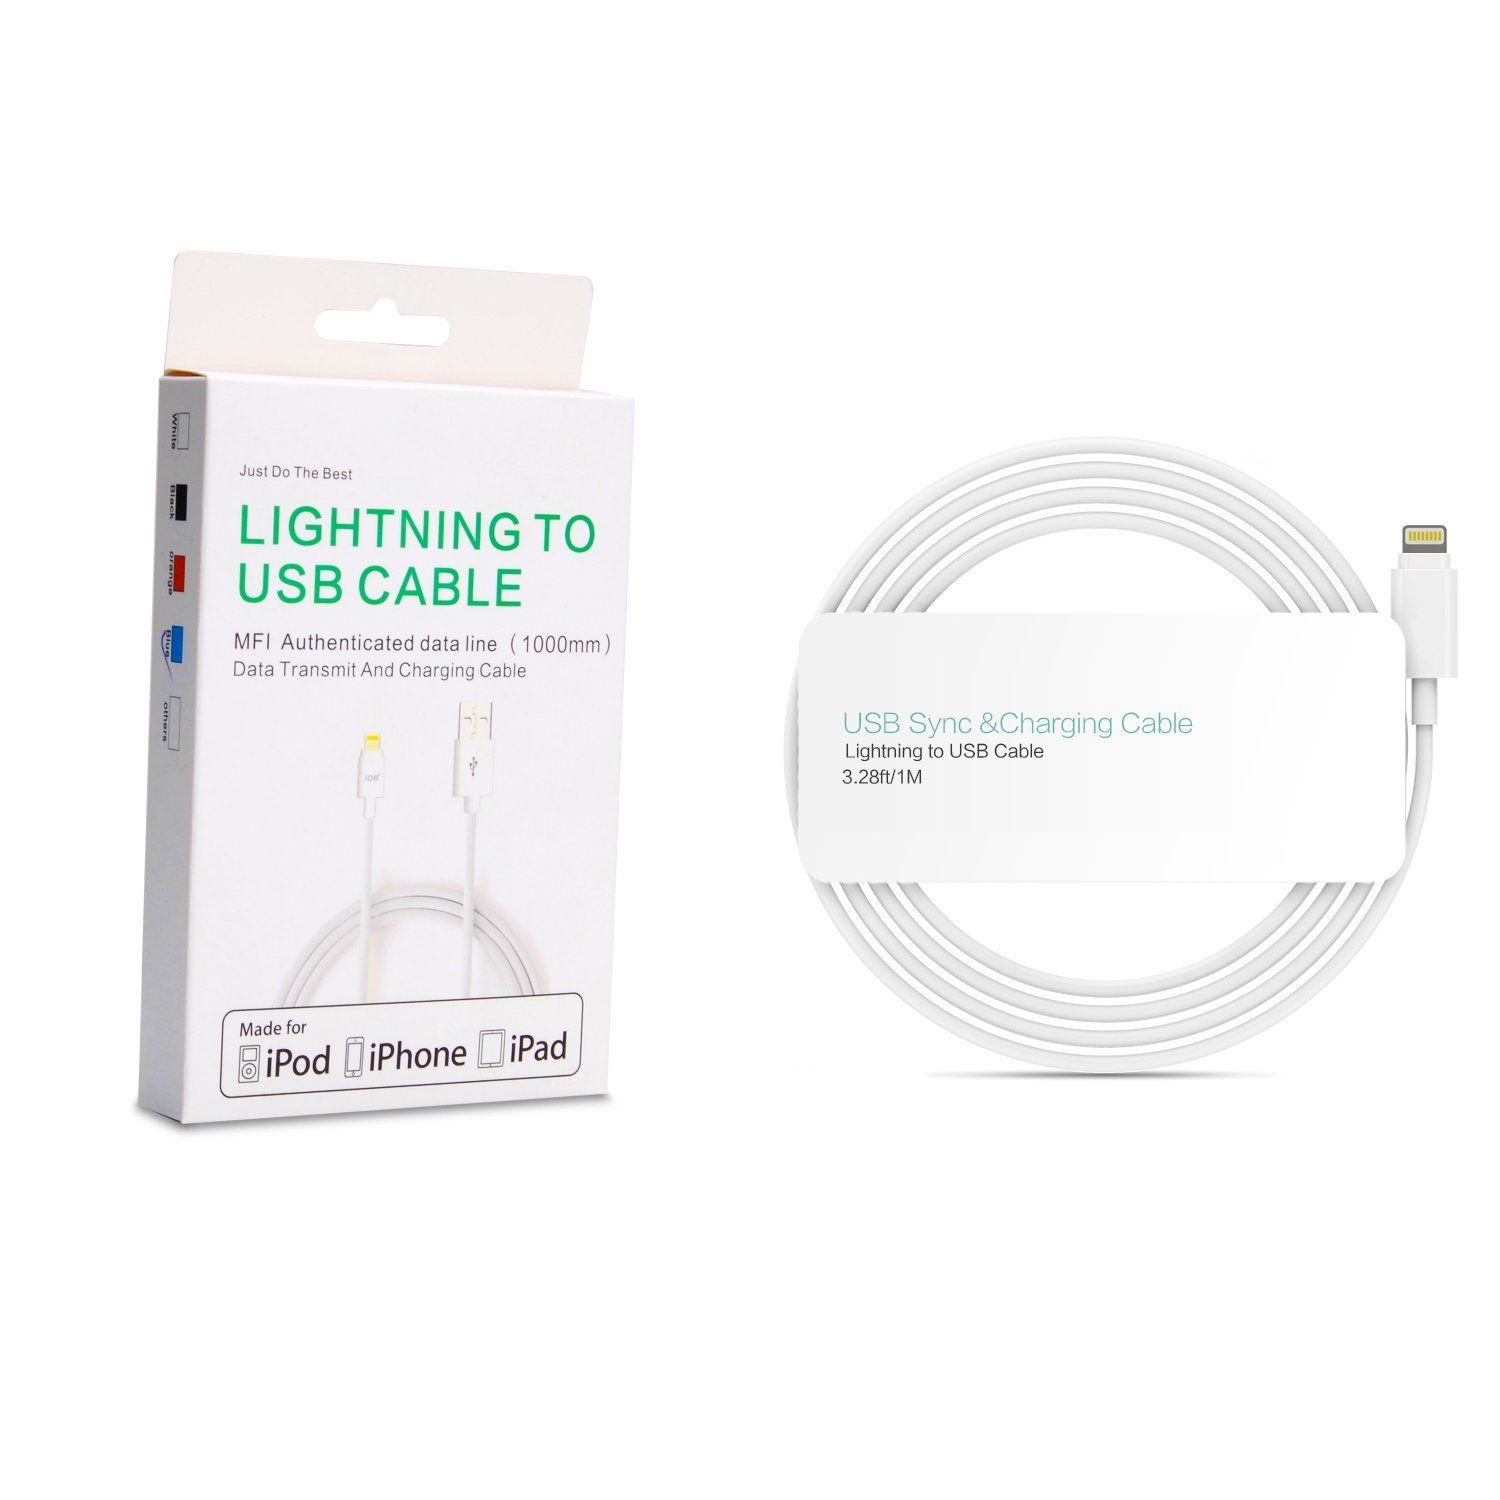 Apple MFi Certified lightning cable 1M / 3.28ft (2pack